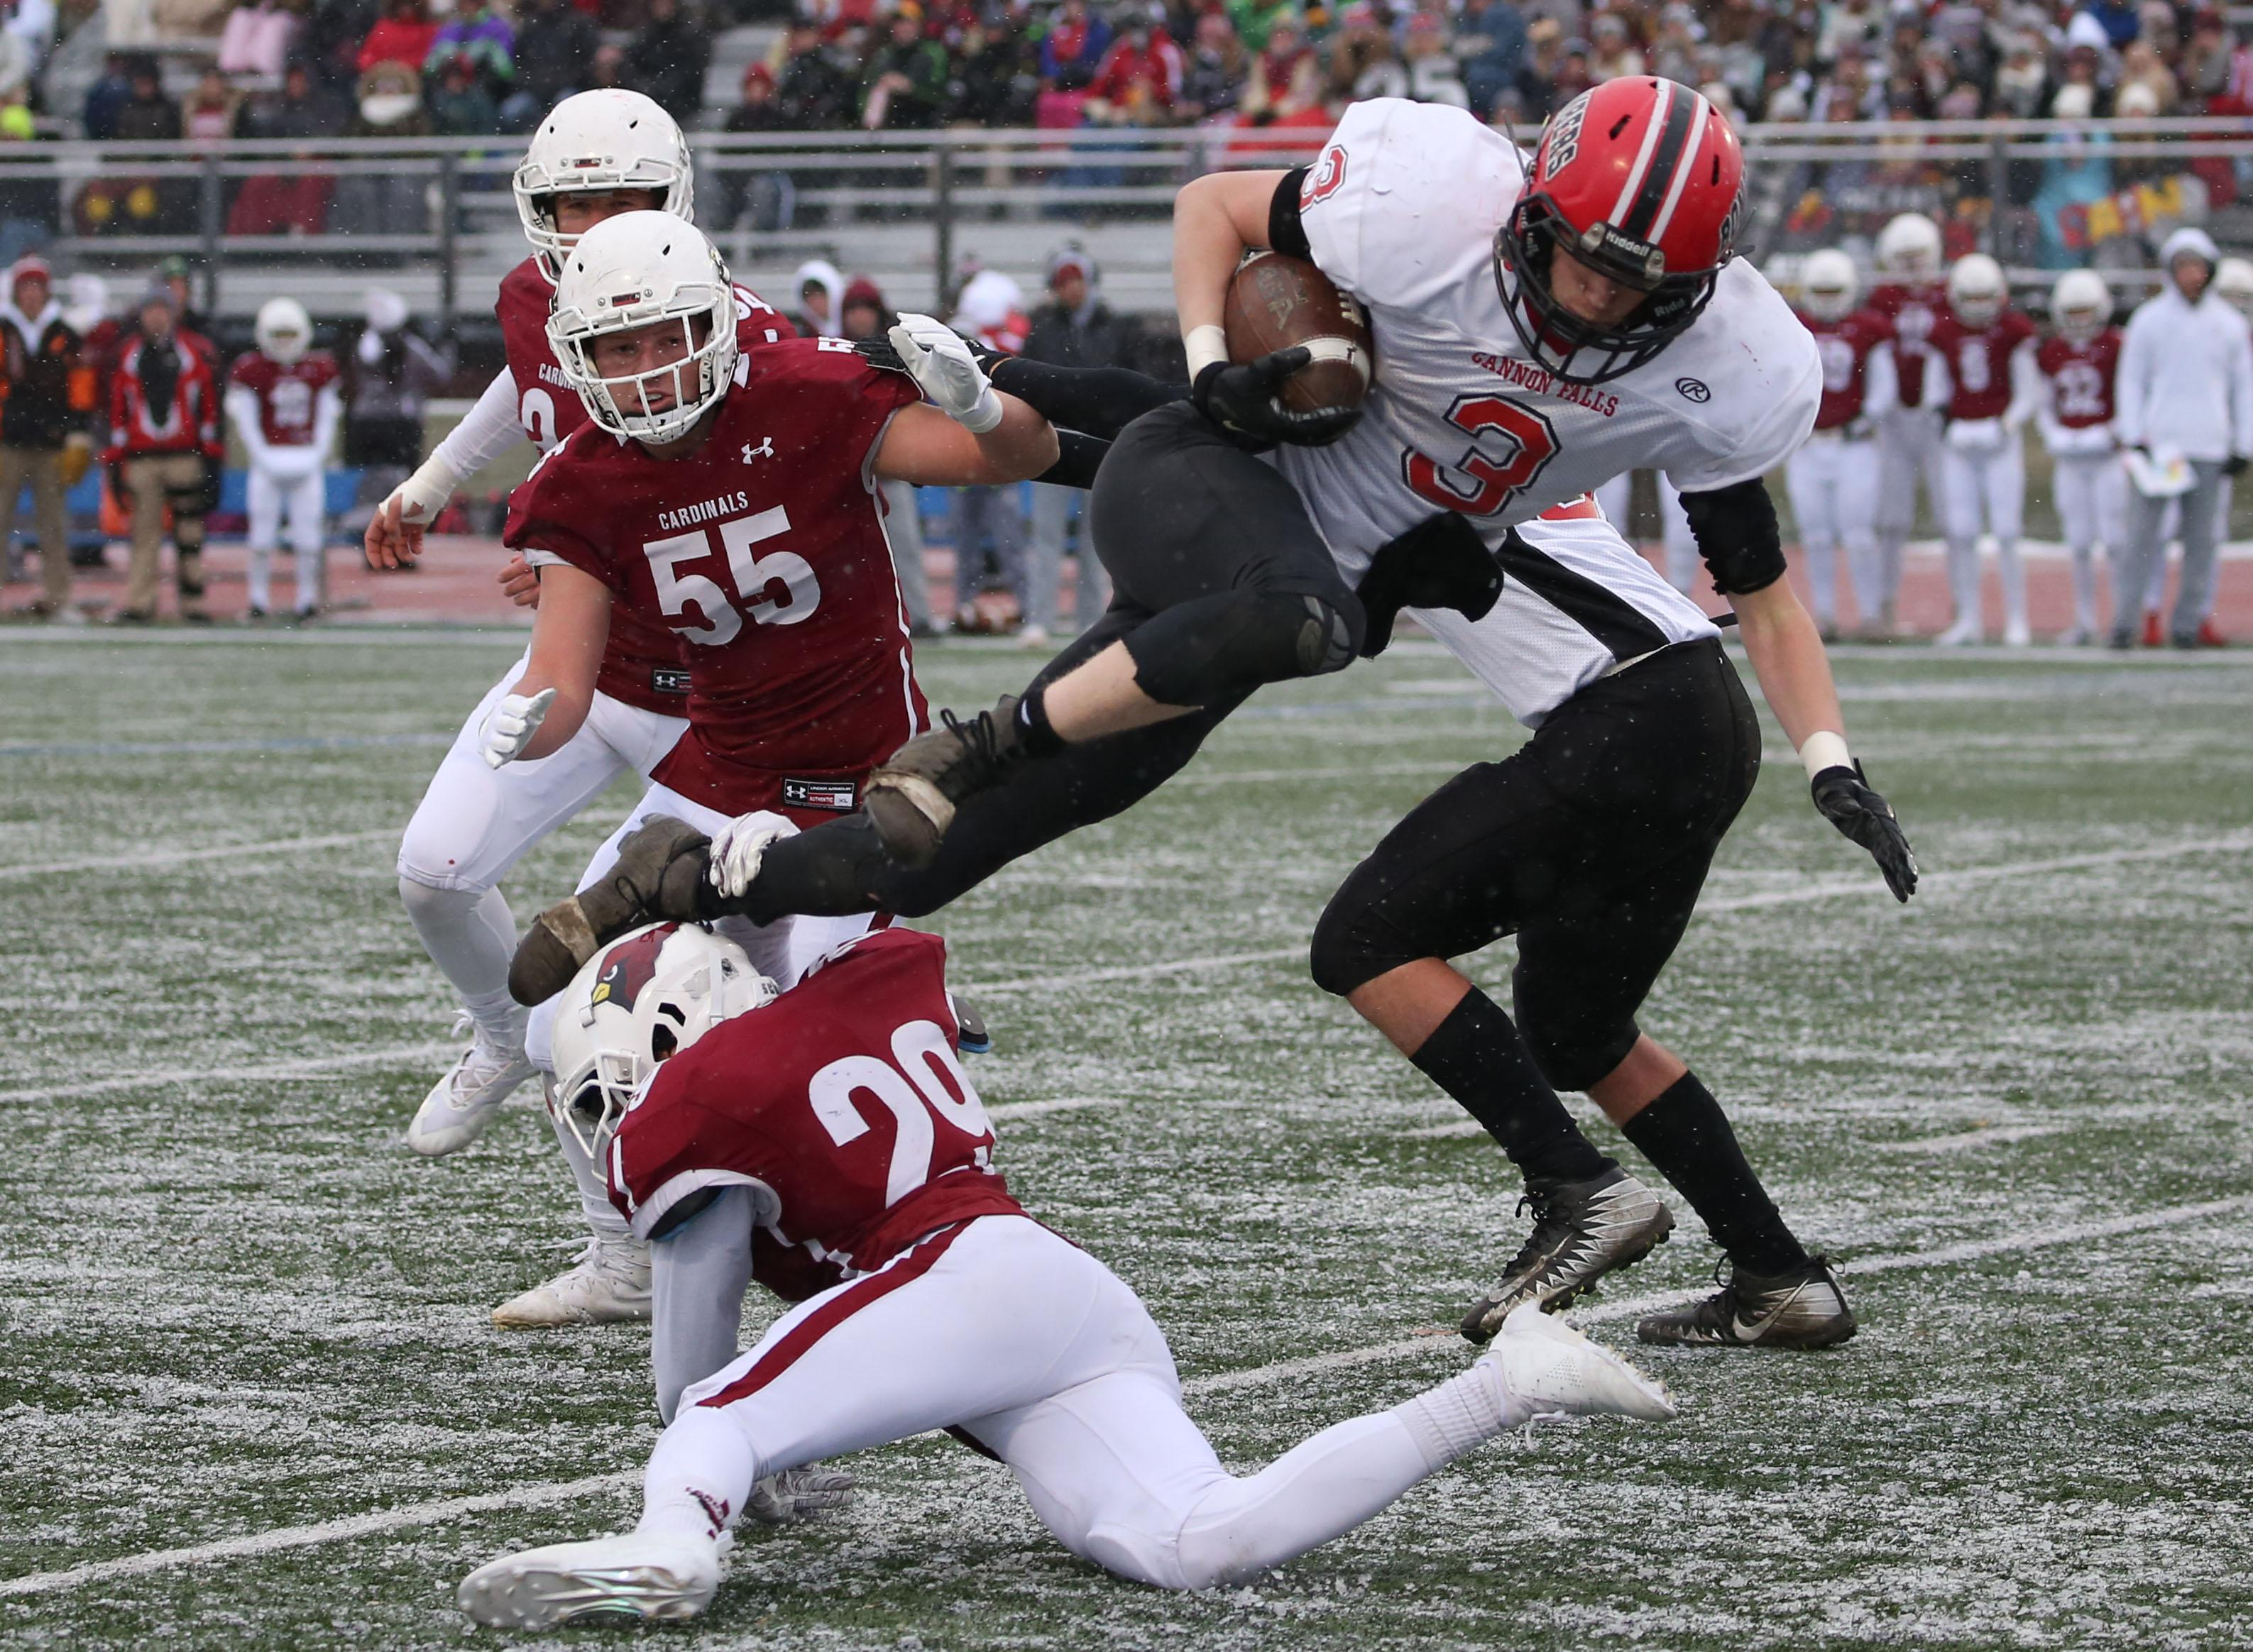 Brodie Hansen (3) leaps over Cardinal defenders for extra yardage. Hansen scored Cannon Falls' only touchdown of the first half to take a 7-6 lead into halftime. Photo by Cheryl Myers, SportsEngine